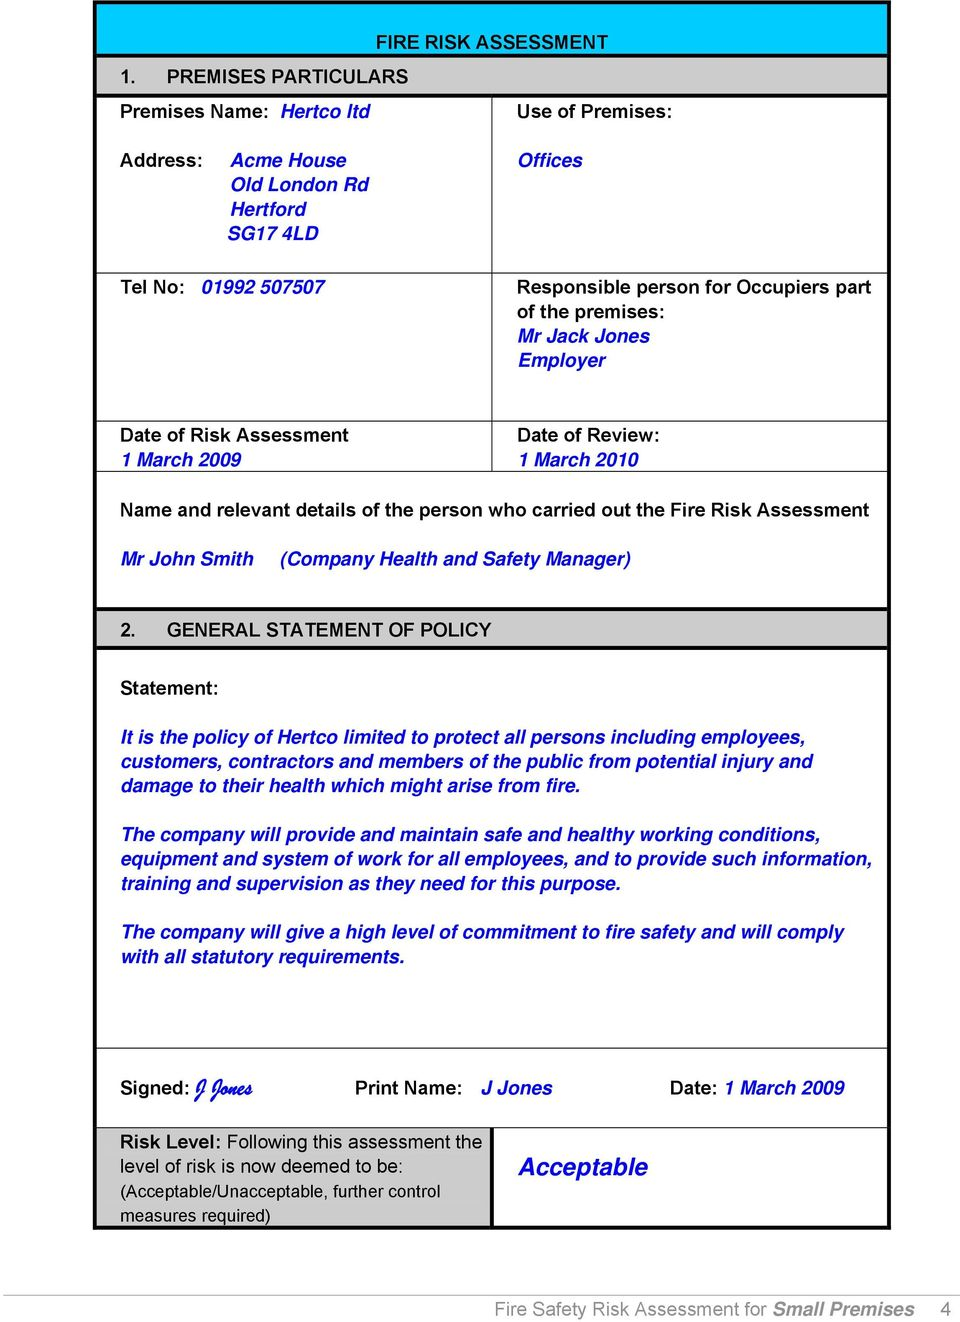 Mr Jack Jones Employer Date of Risk Assessment 1 March 2009 Date of Review: 1 March 2010 Name and relevant details of the person who carried out the Fire Risk Assessment Mr John Smith (Company Health